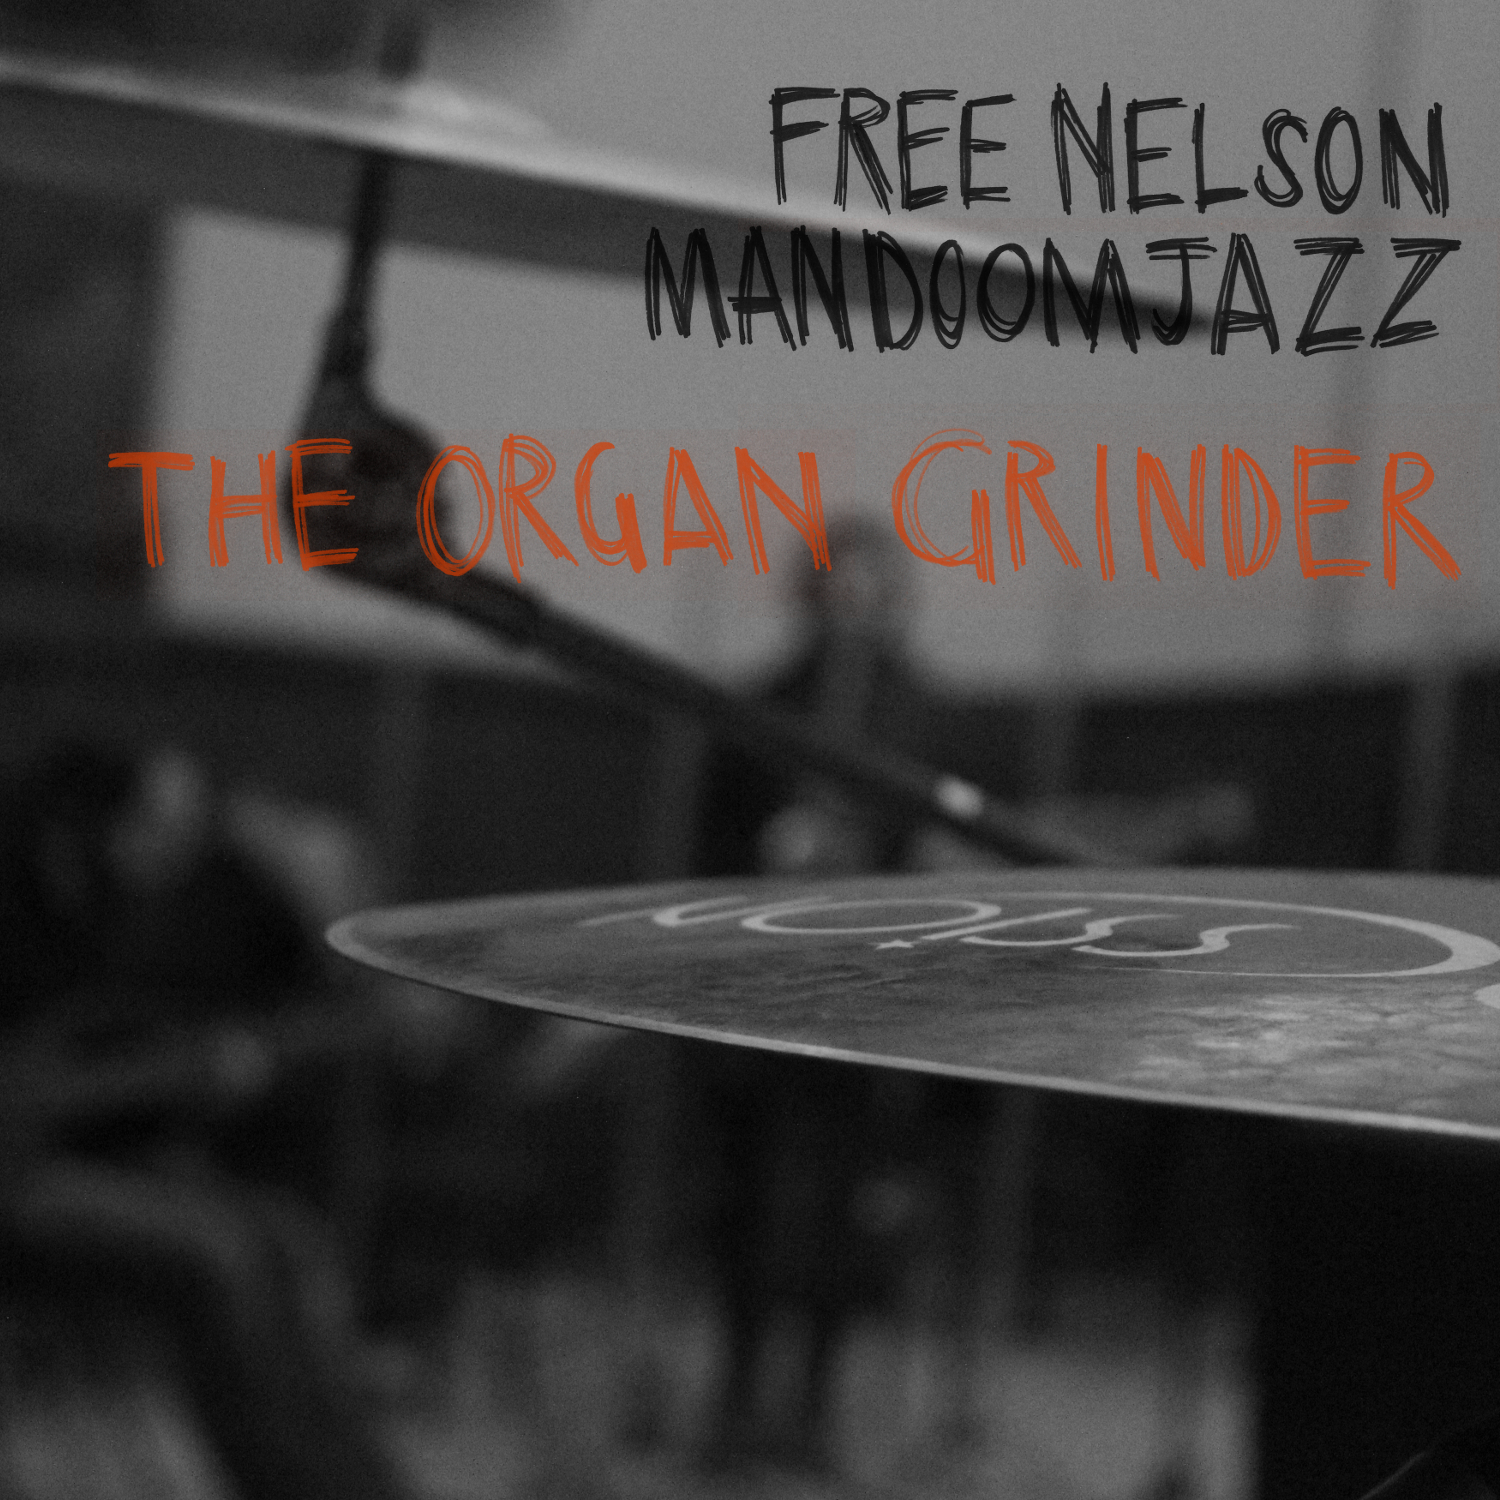 Free Nelson Mandoom Jazz – The Organ Grinder